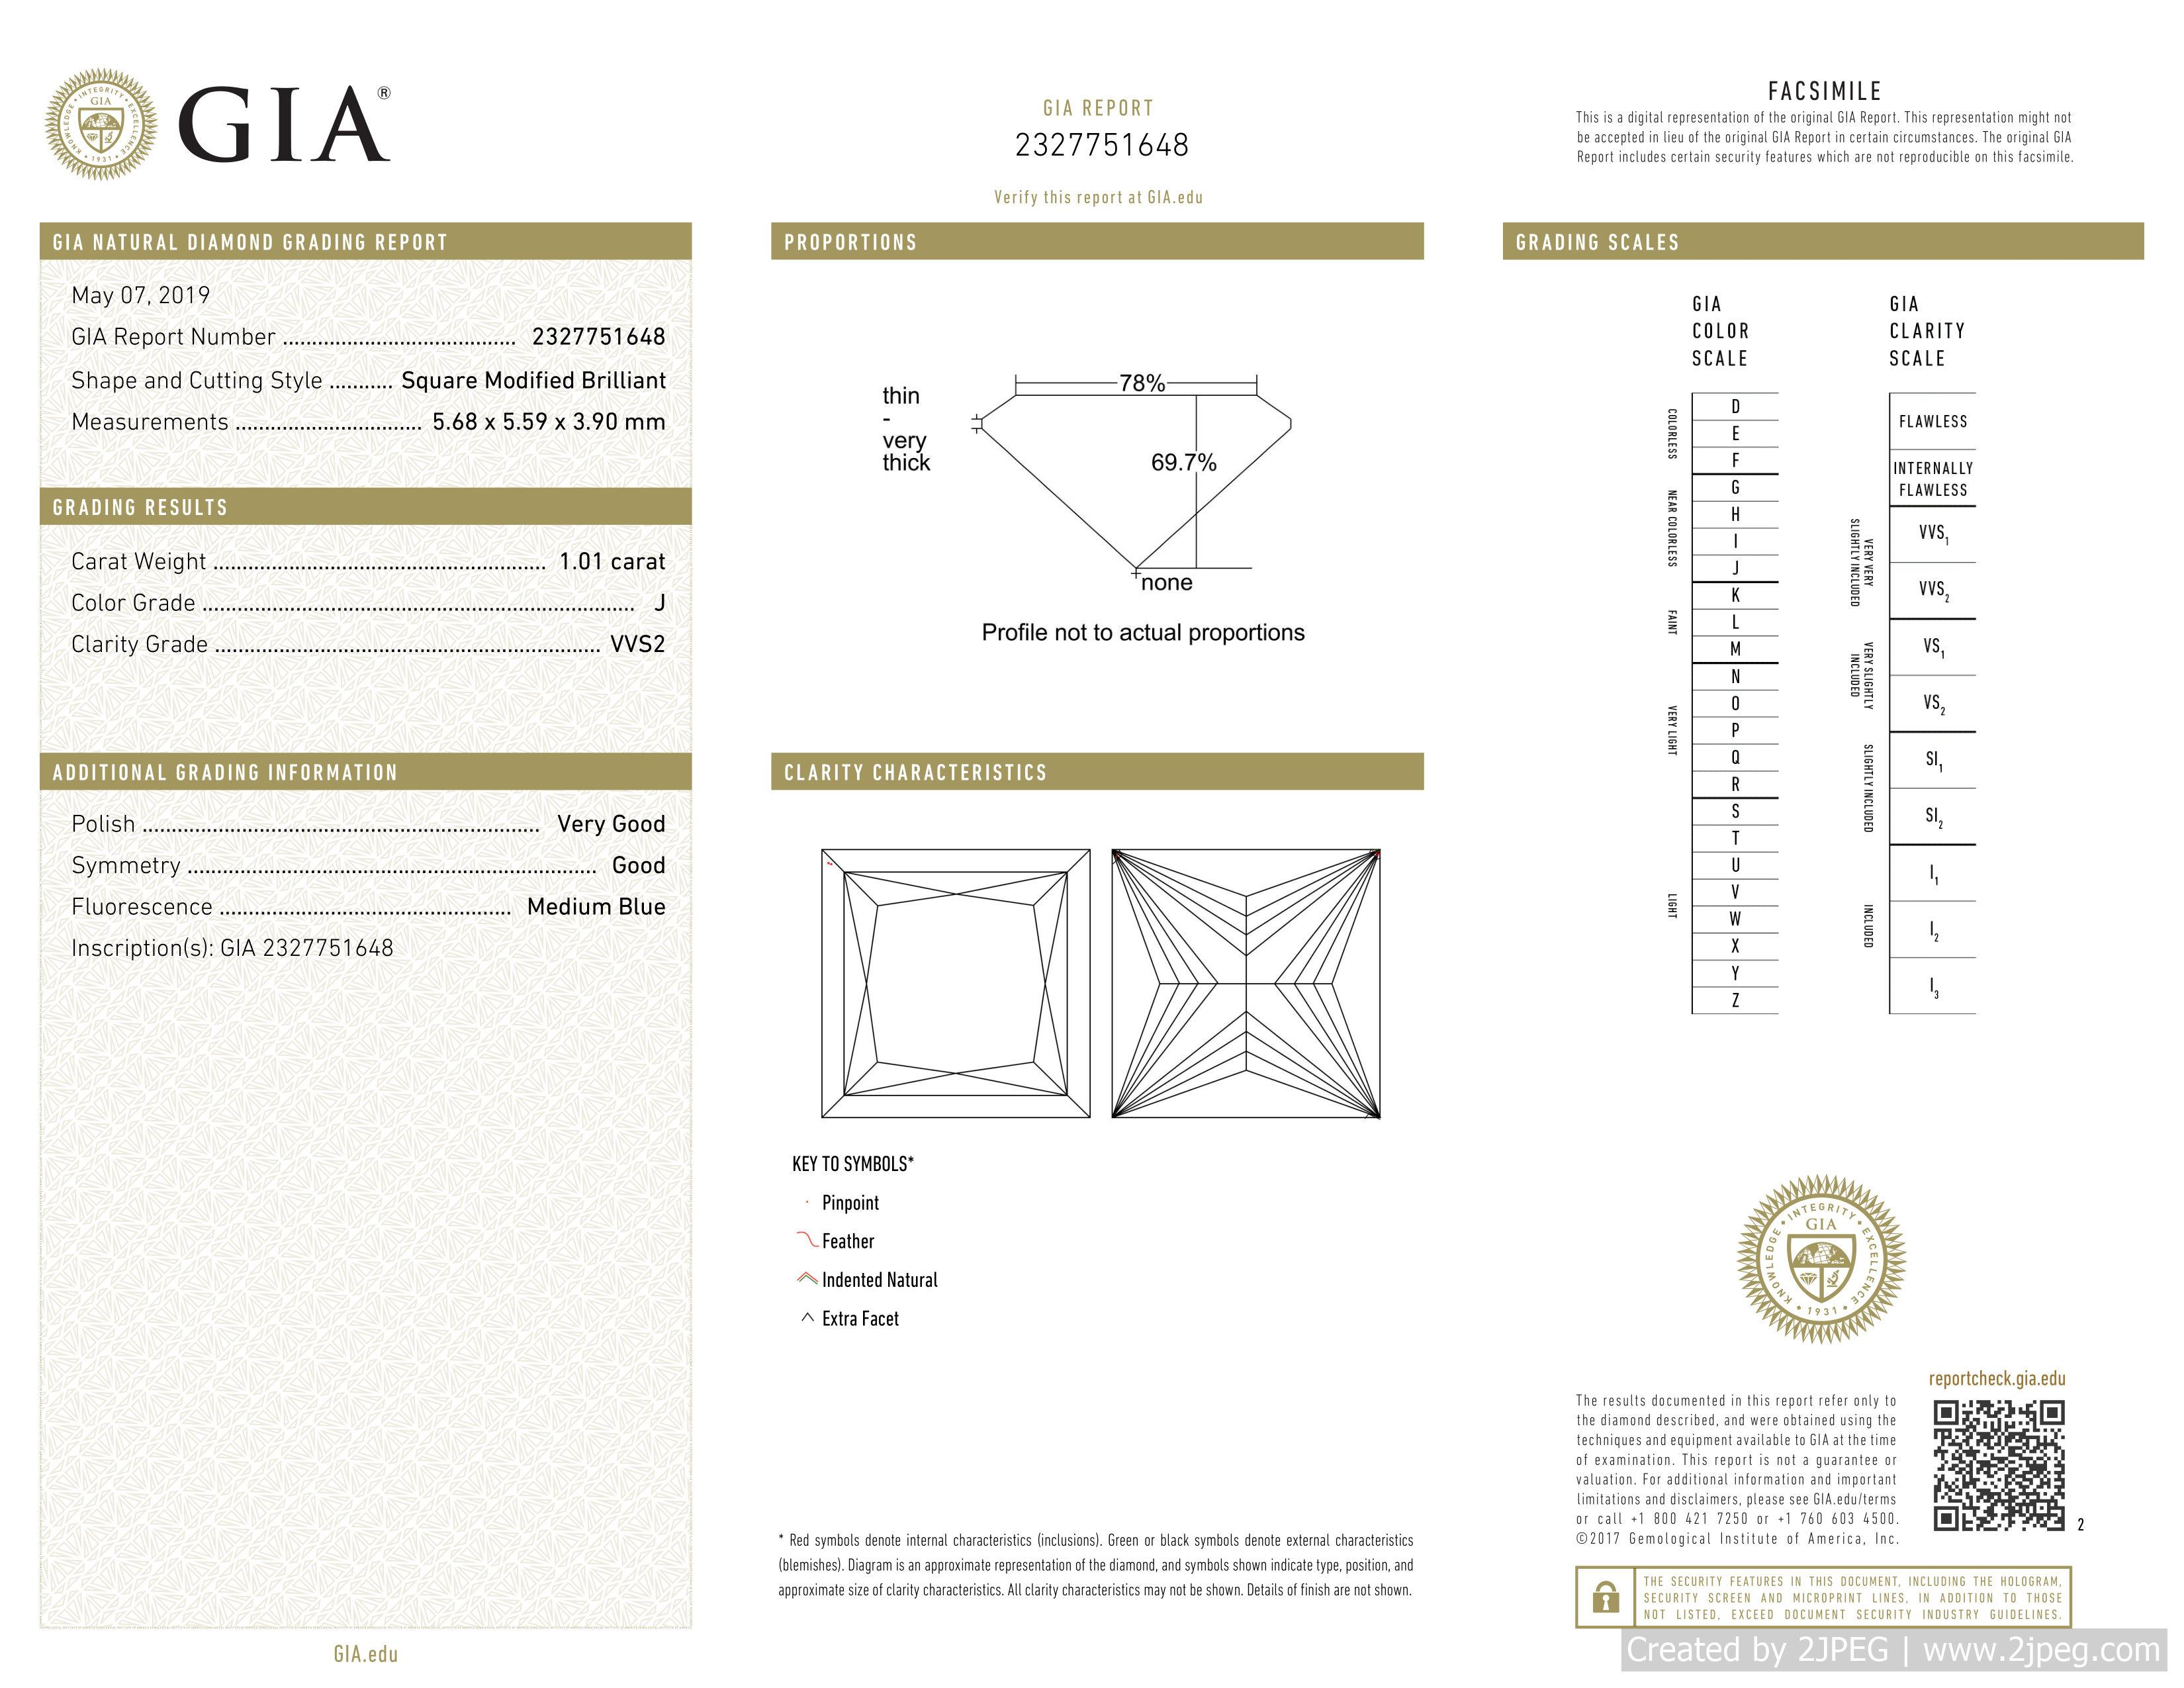 This is a 1.01 carat princess shape, J color, VVS2 clarity natural diamond accompanied by a GIA grading report.